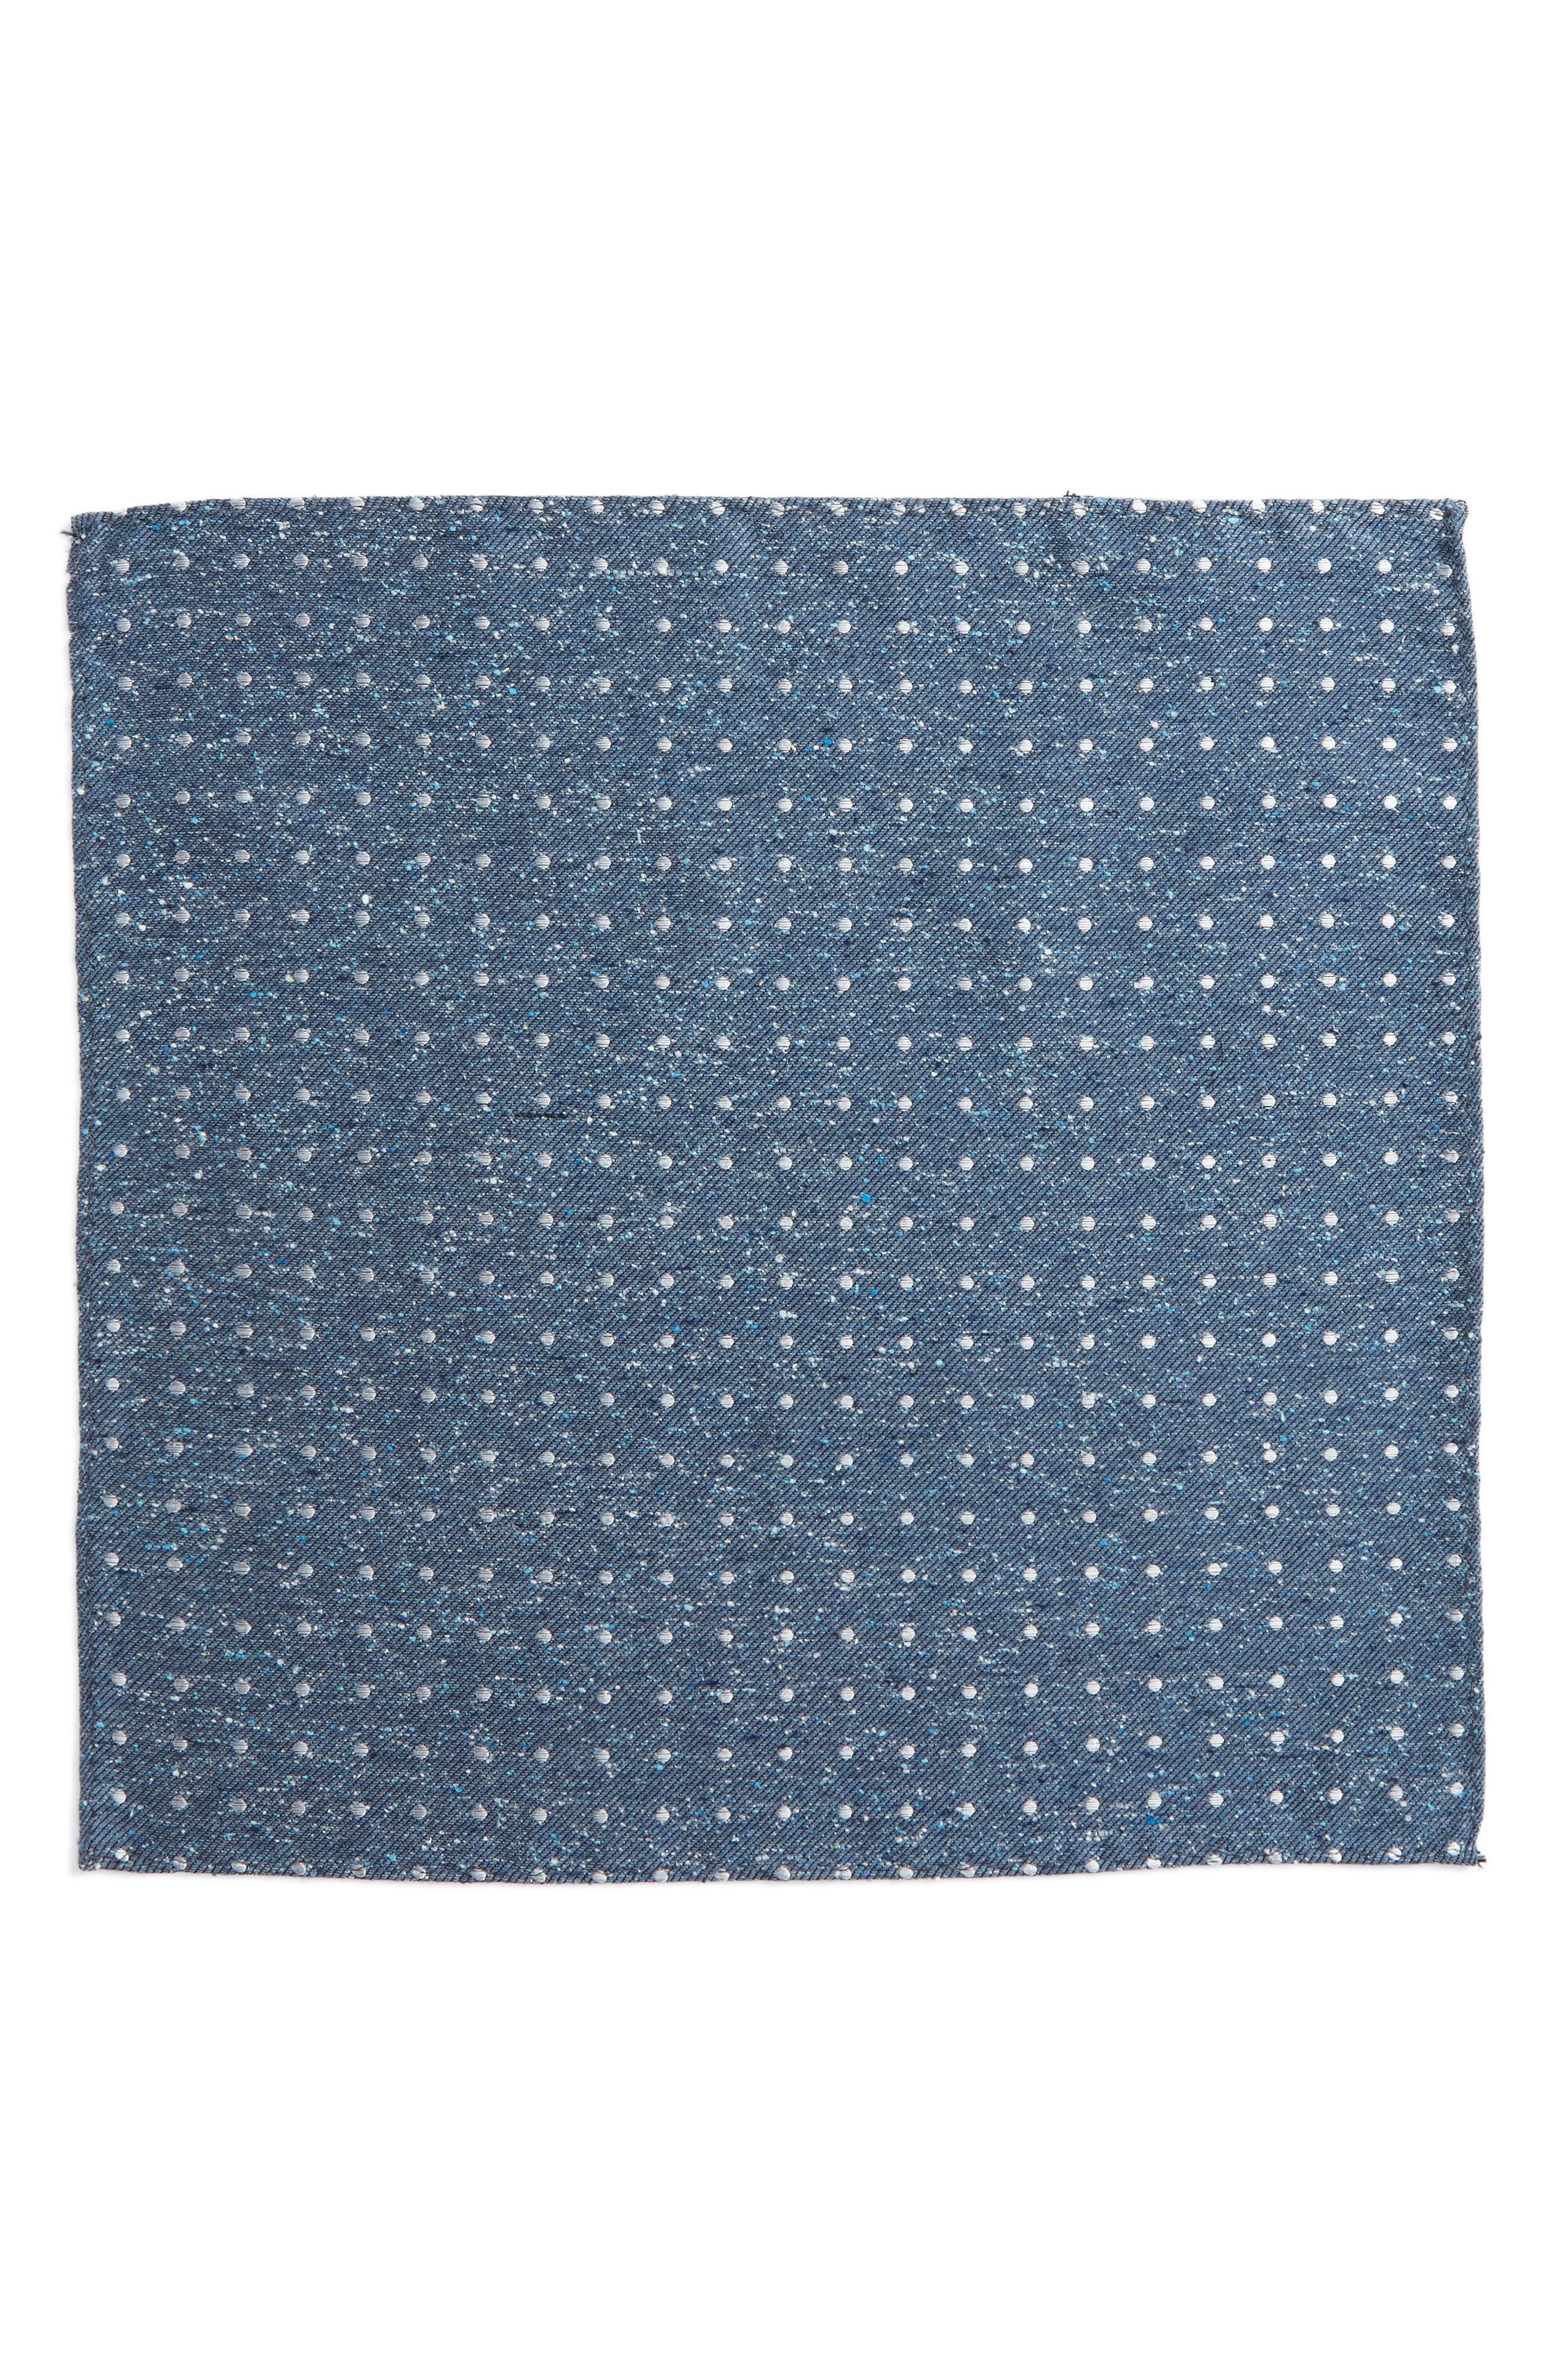 Alternate Image 3  - The Tie Bar Knotted Dots Silk Pocket Square